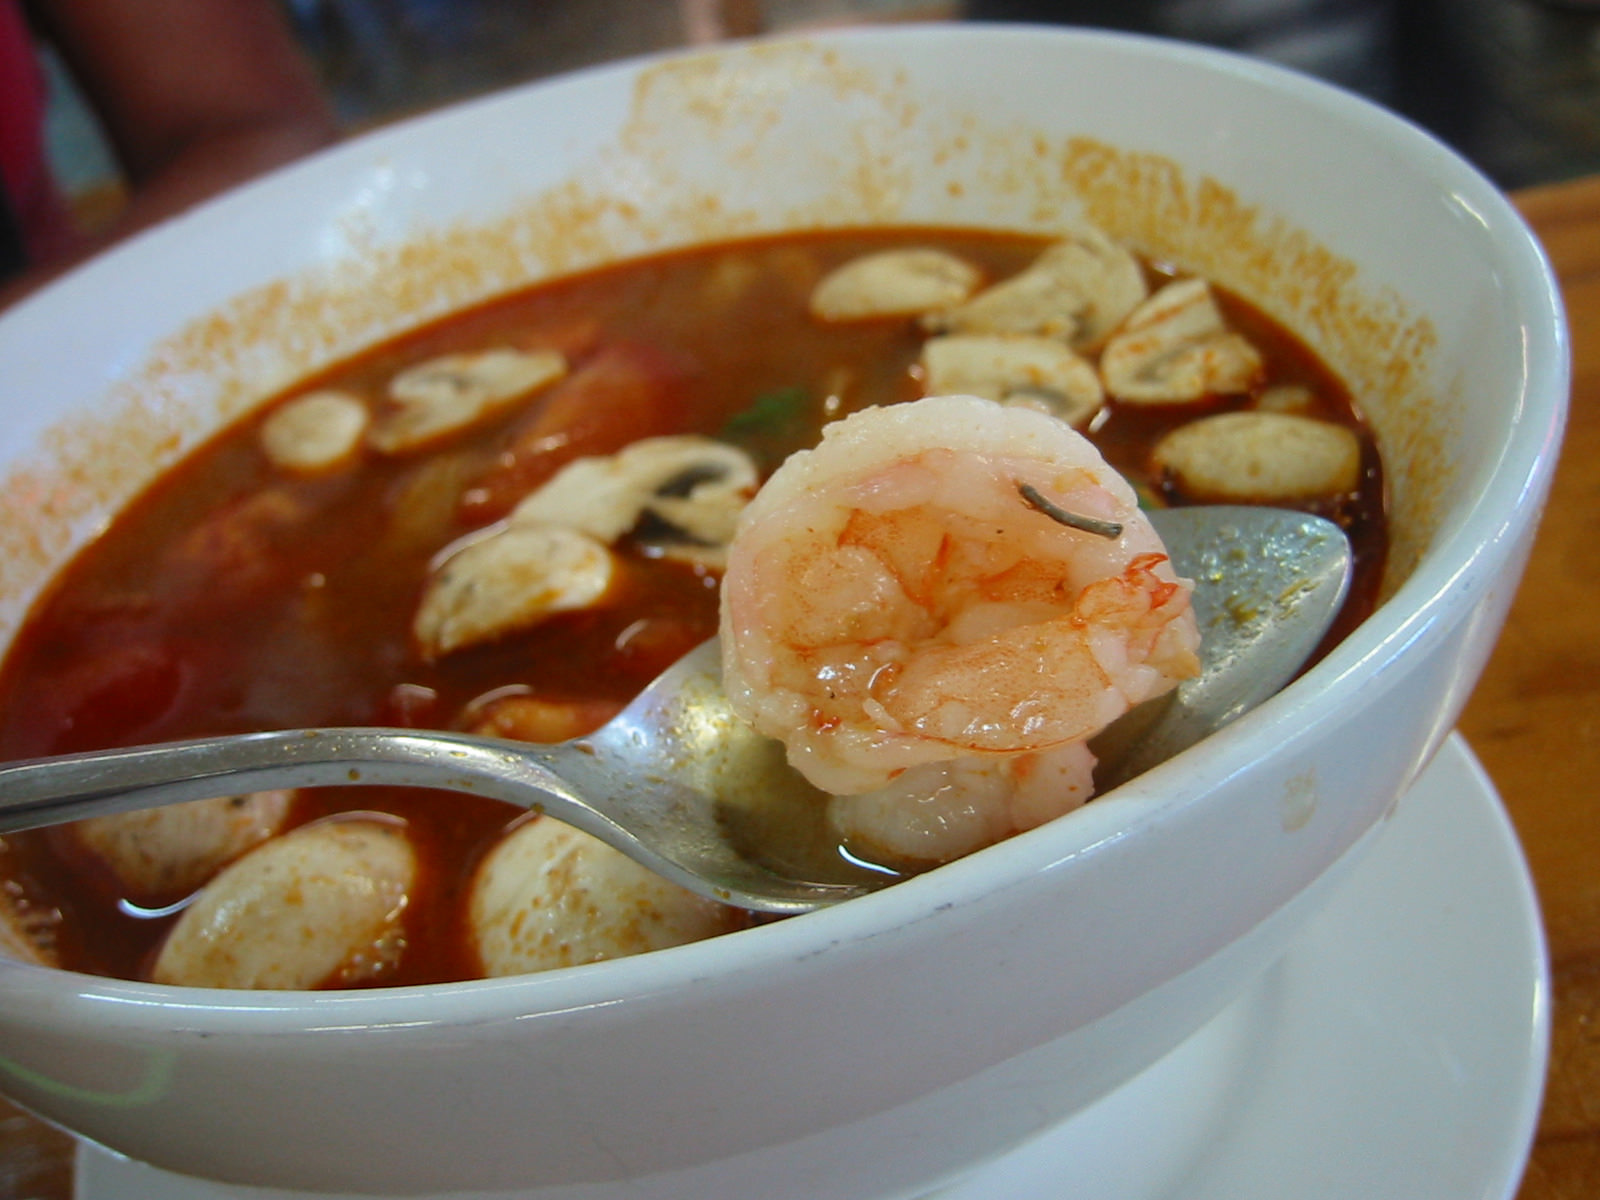 Prawn from tom yum soup